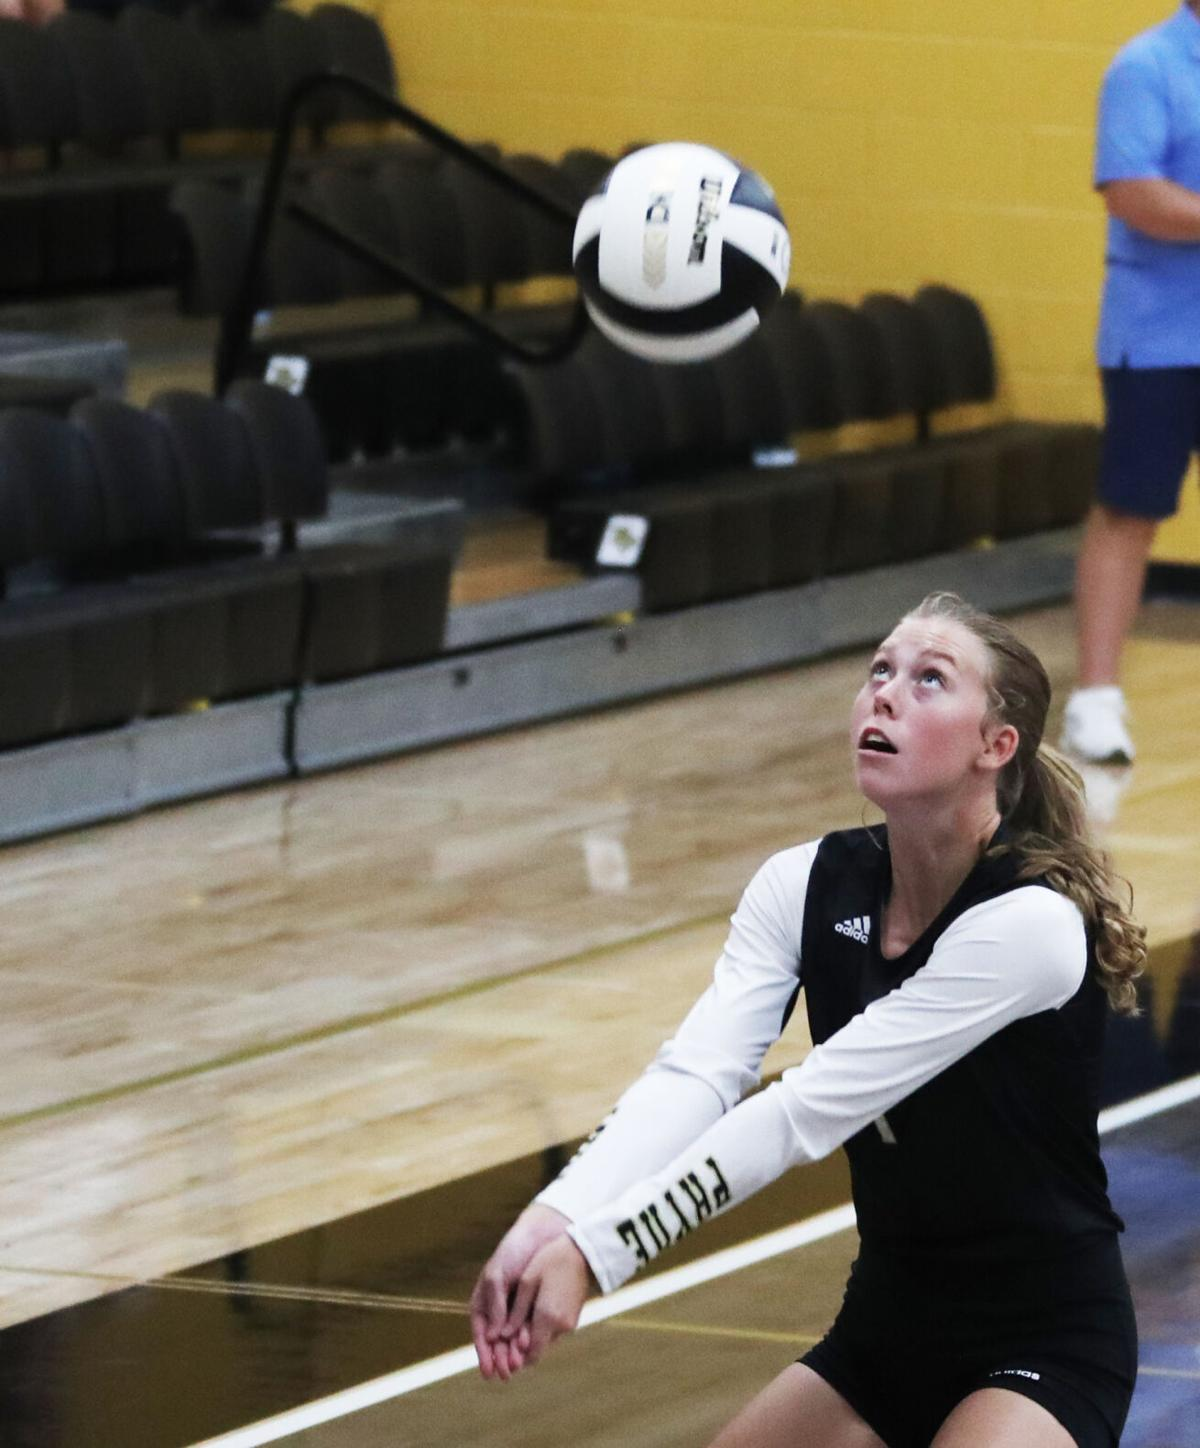 Fort Payne takes losses in home opener